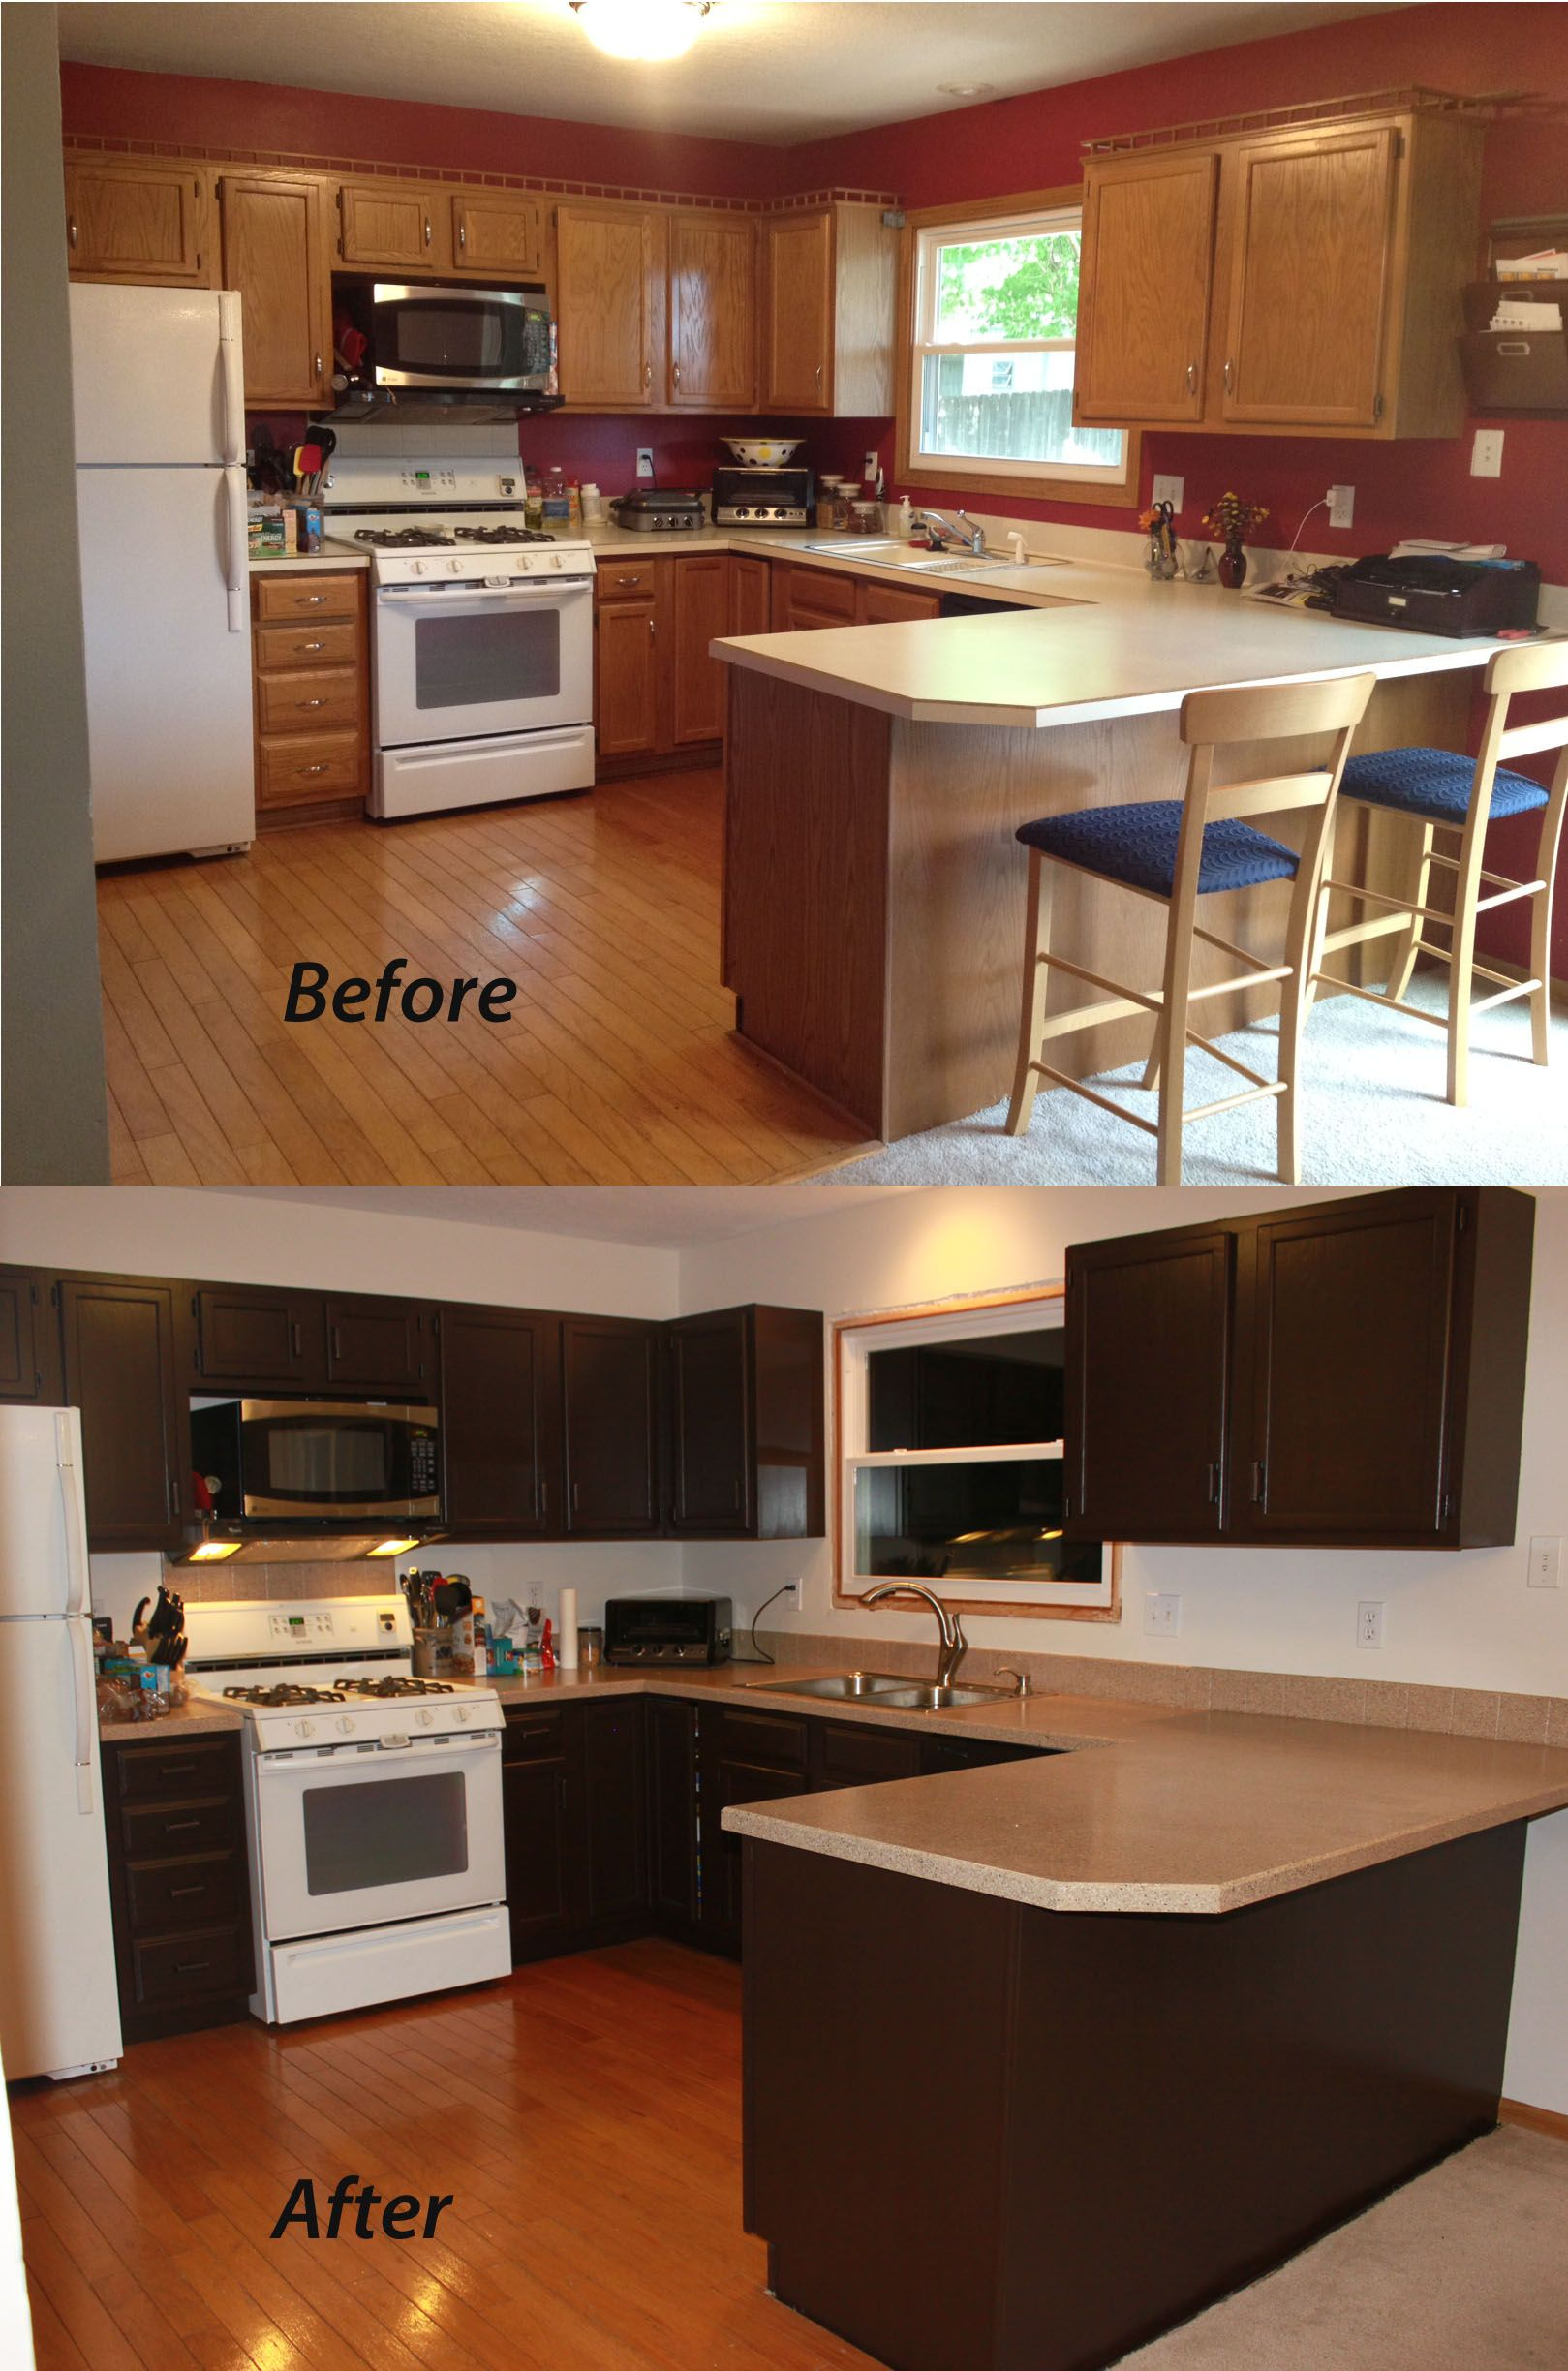 Painting Kitchen Cabinets Kitchen Cabinets Painted Before And